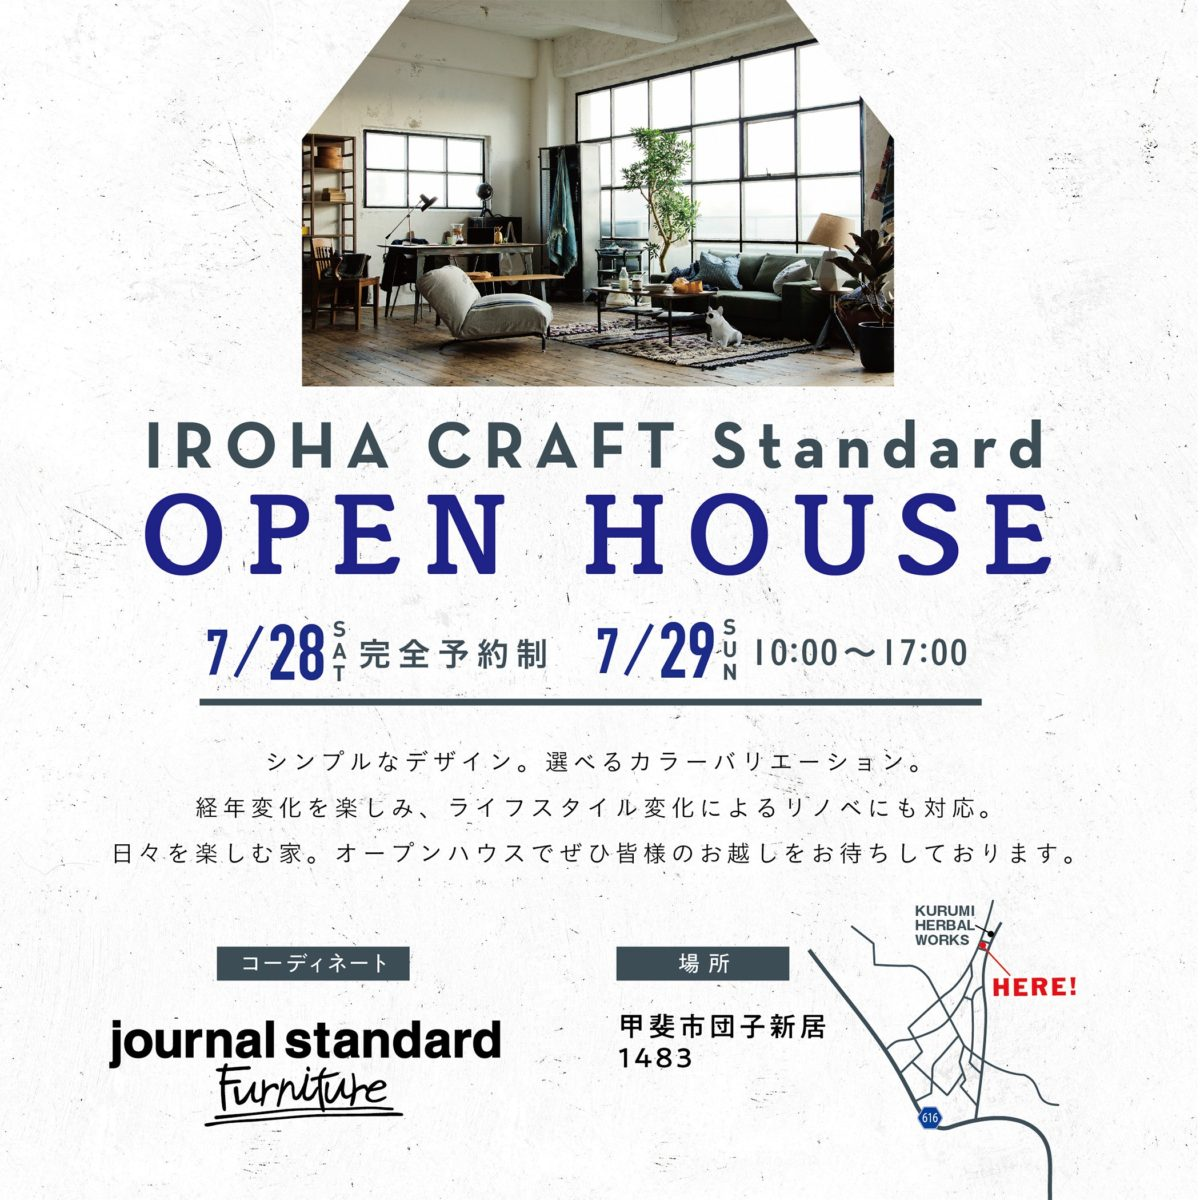 IROHA CRAFT Standard OPEN HOUSE のお知らせ